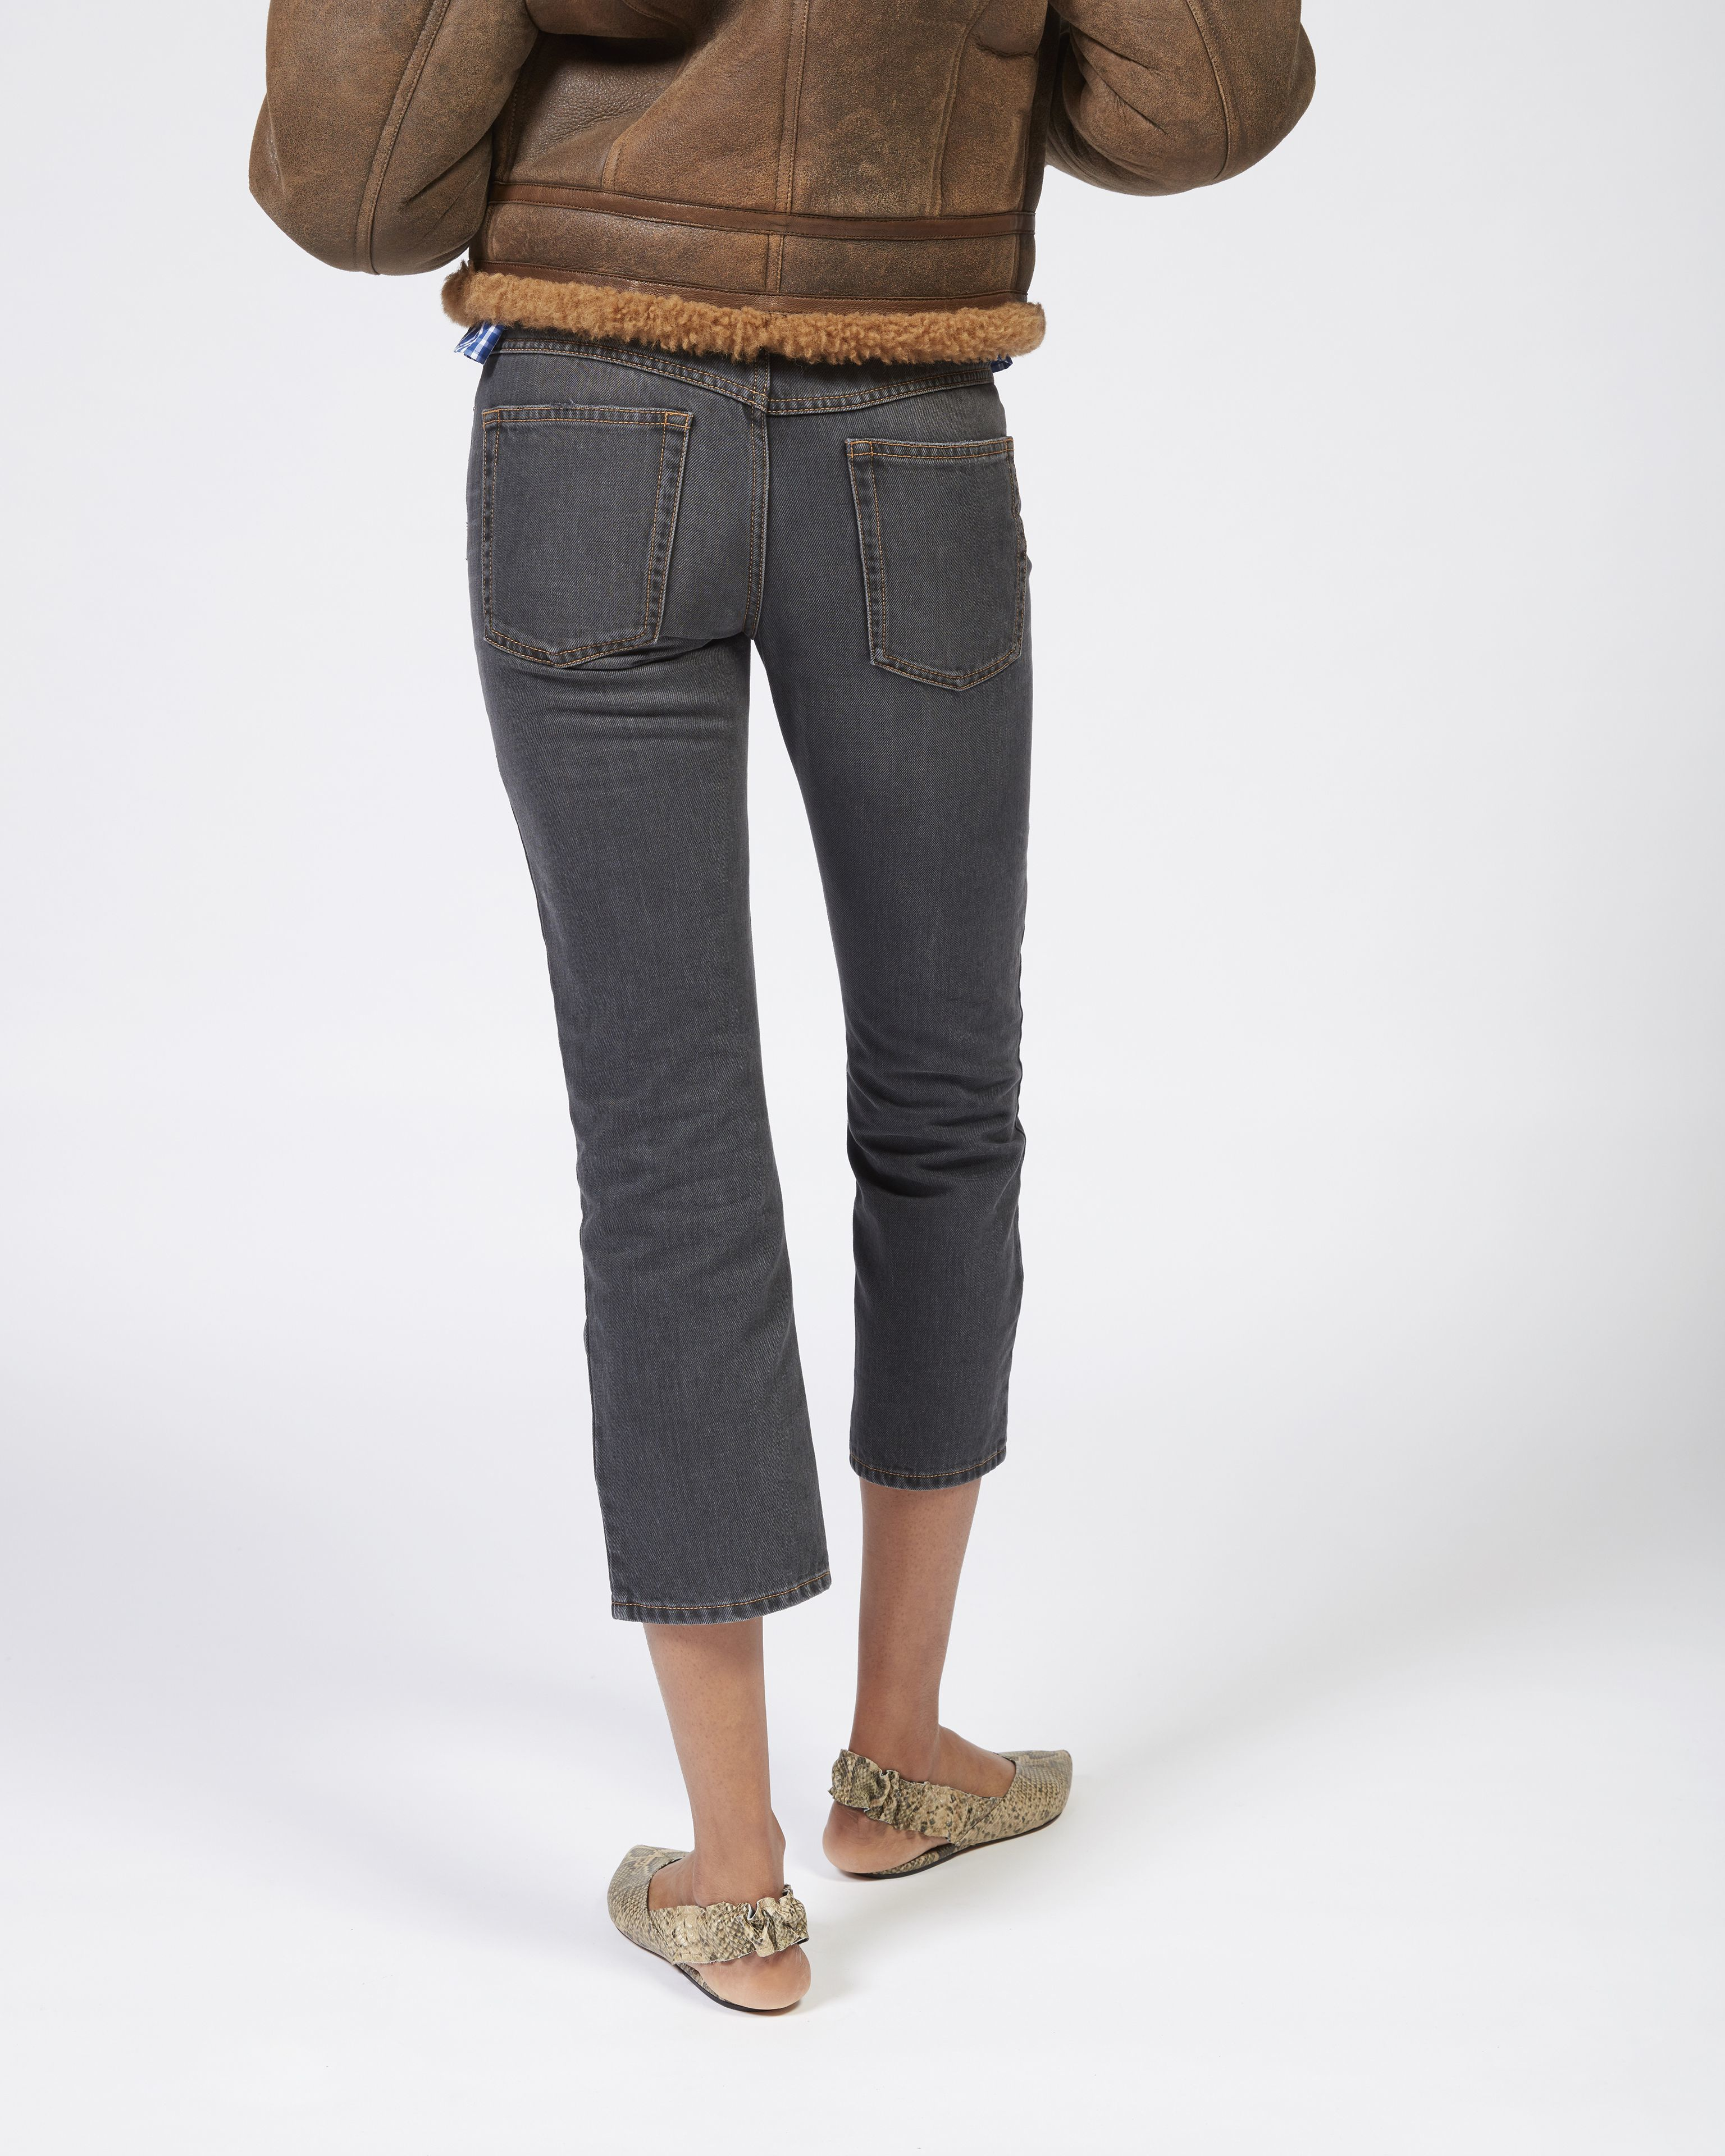 CAOLO flared jeans